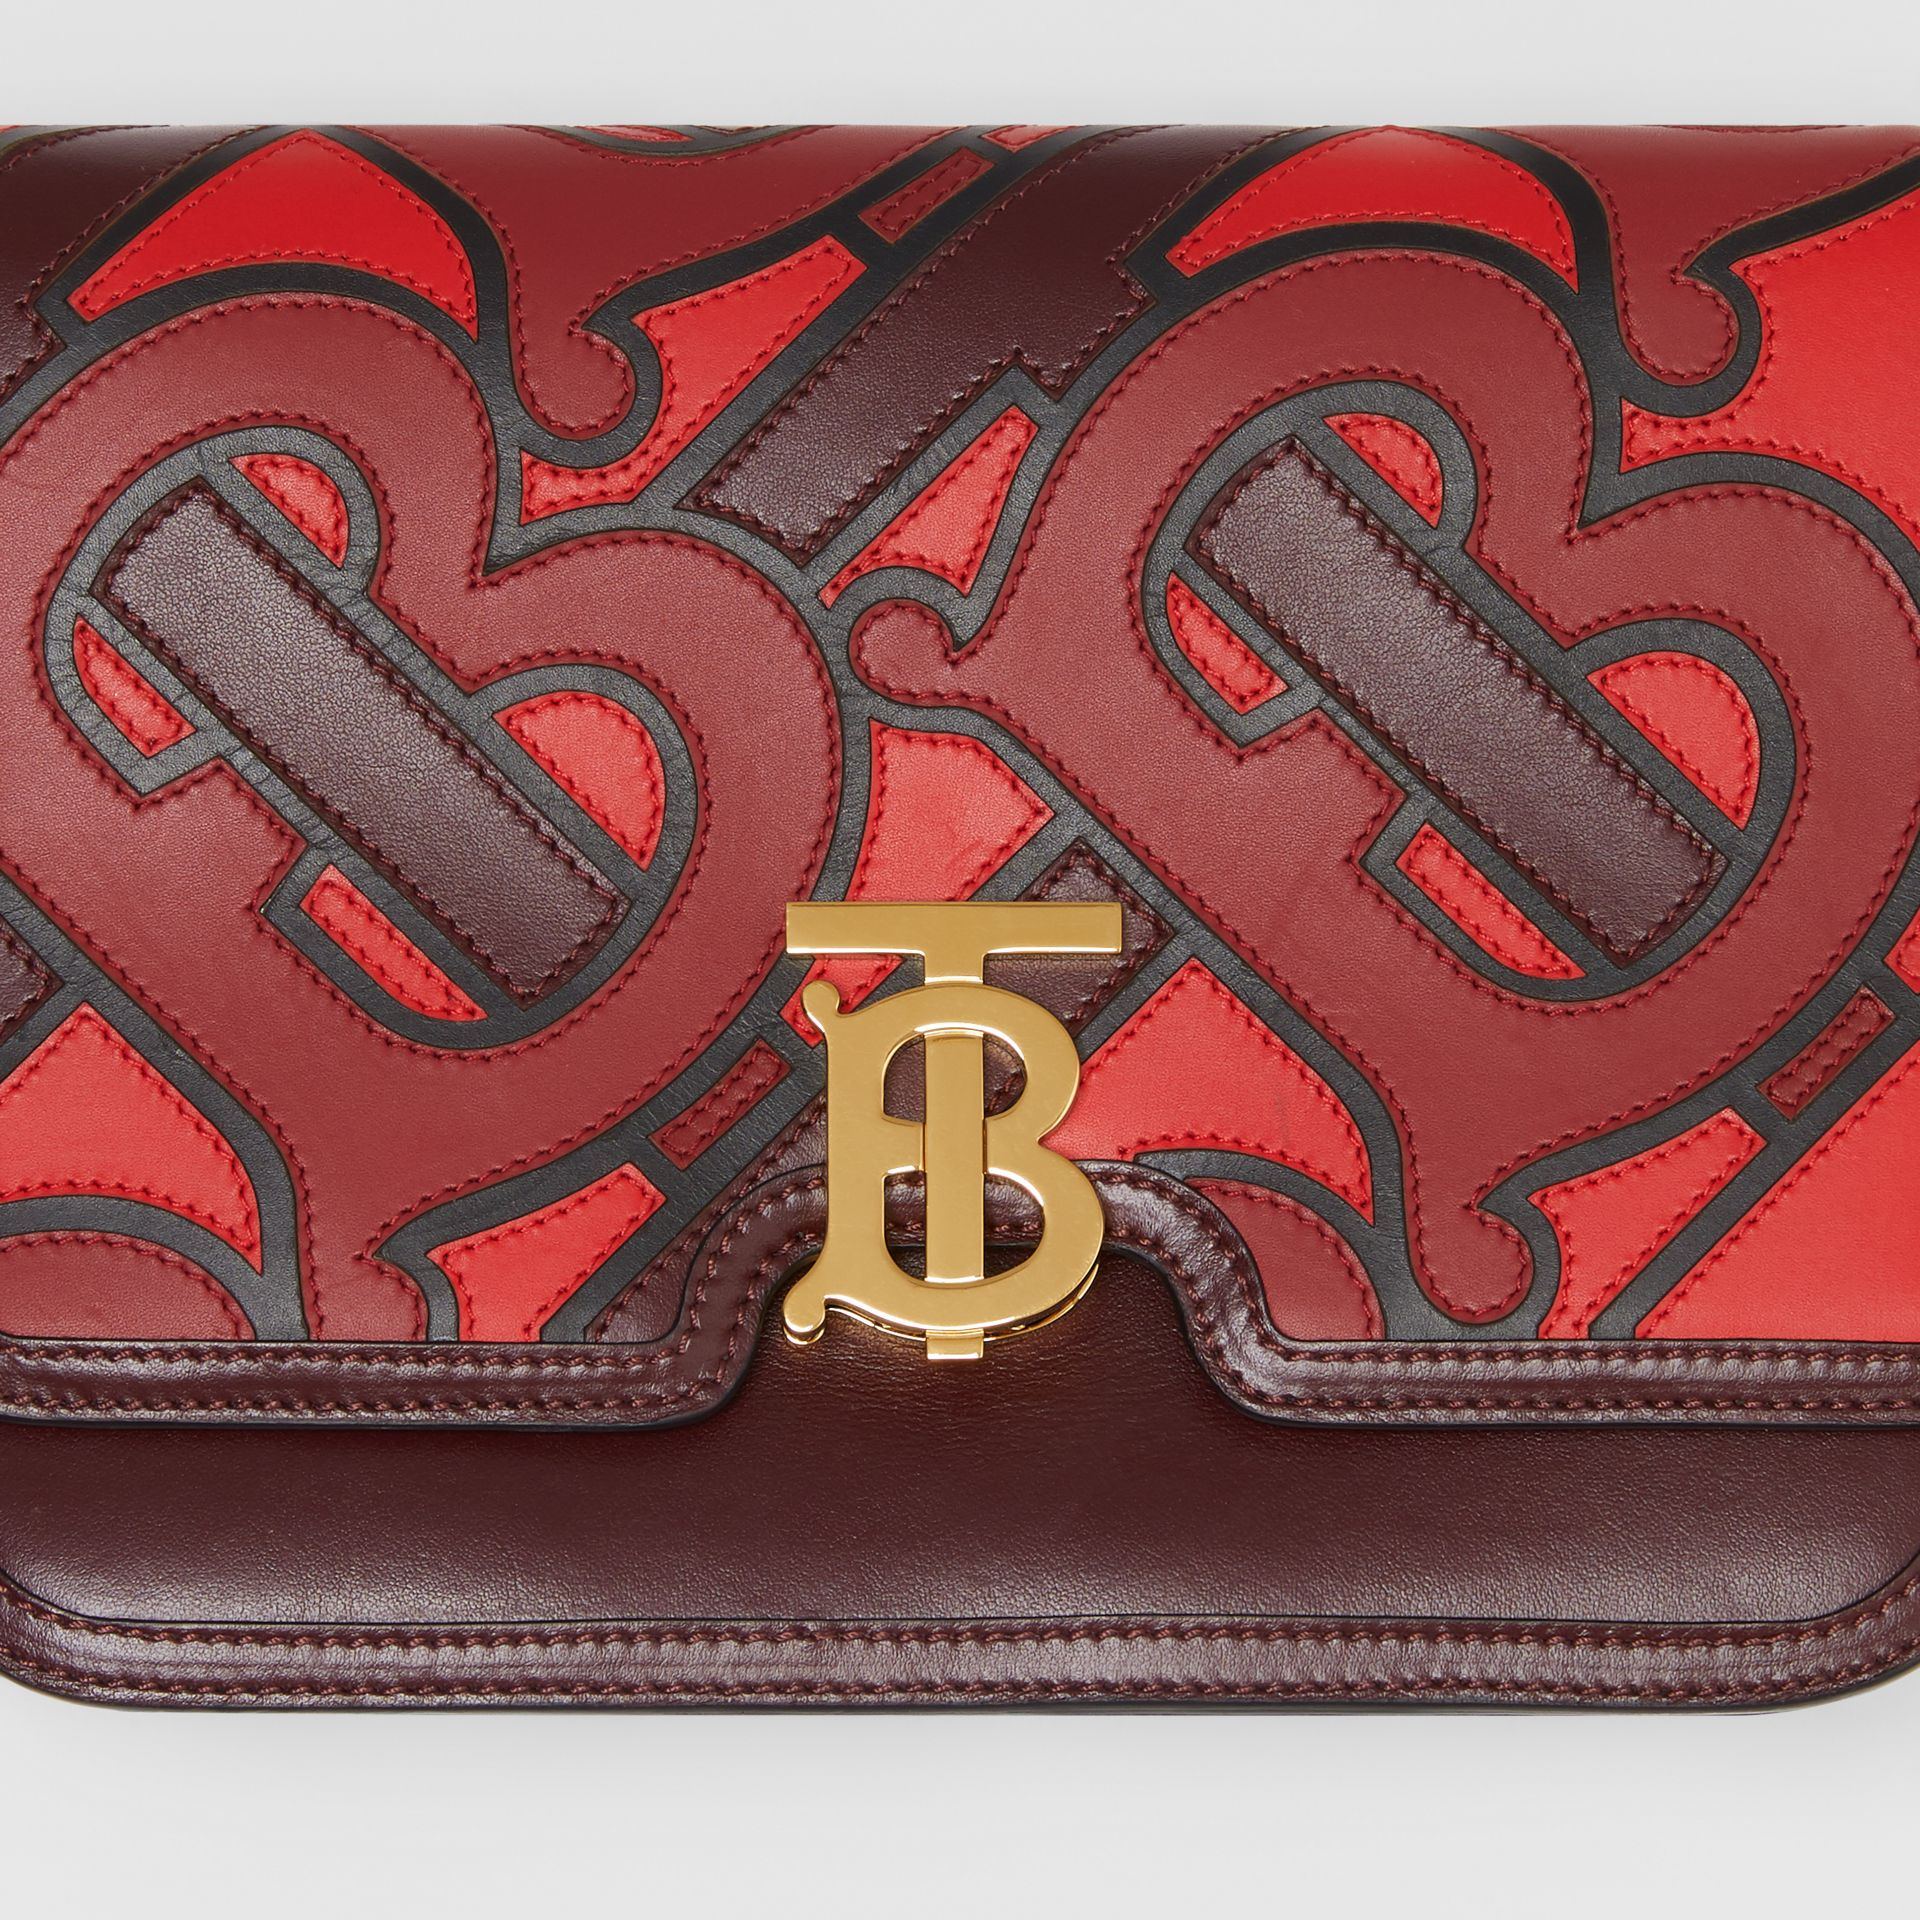 Medium Monogram Appliqué Leather TB Bag in Oxblood - Women | Burberry - gallery image 1